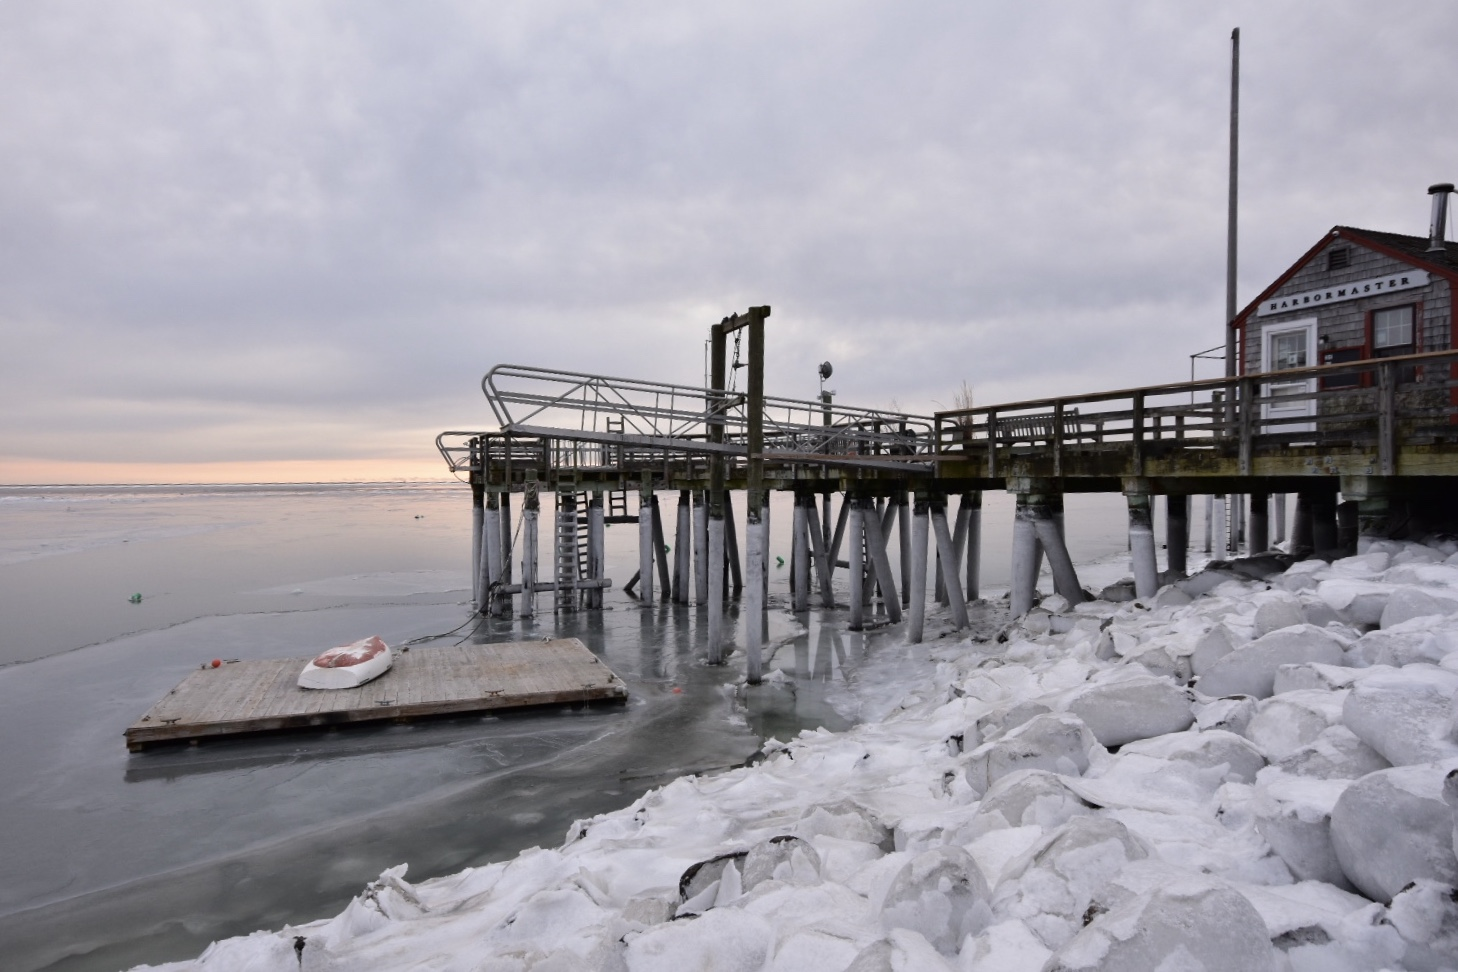 Duxbury Bay, January 2019, Mike Cesarini.